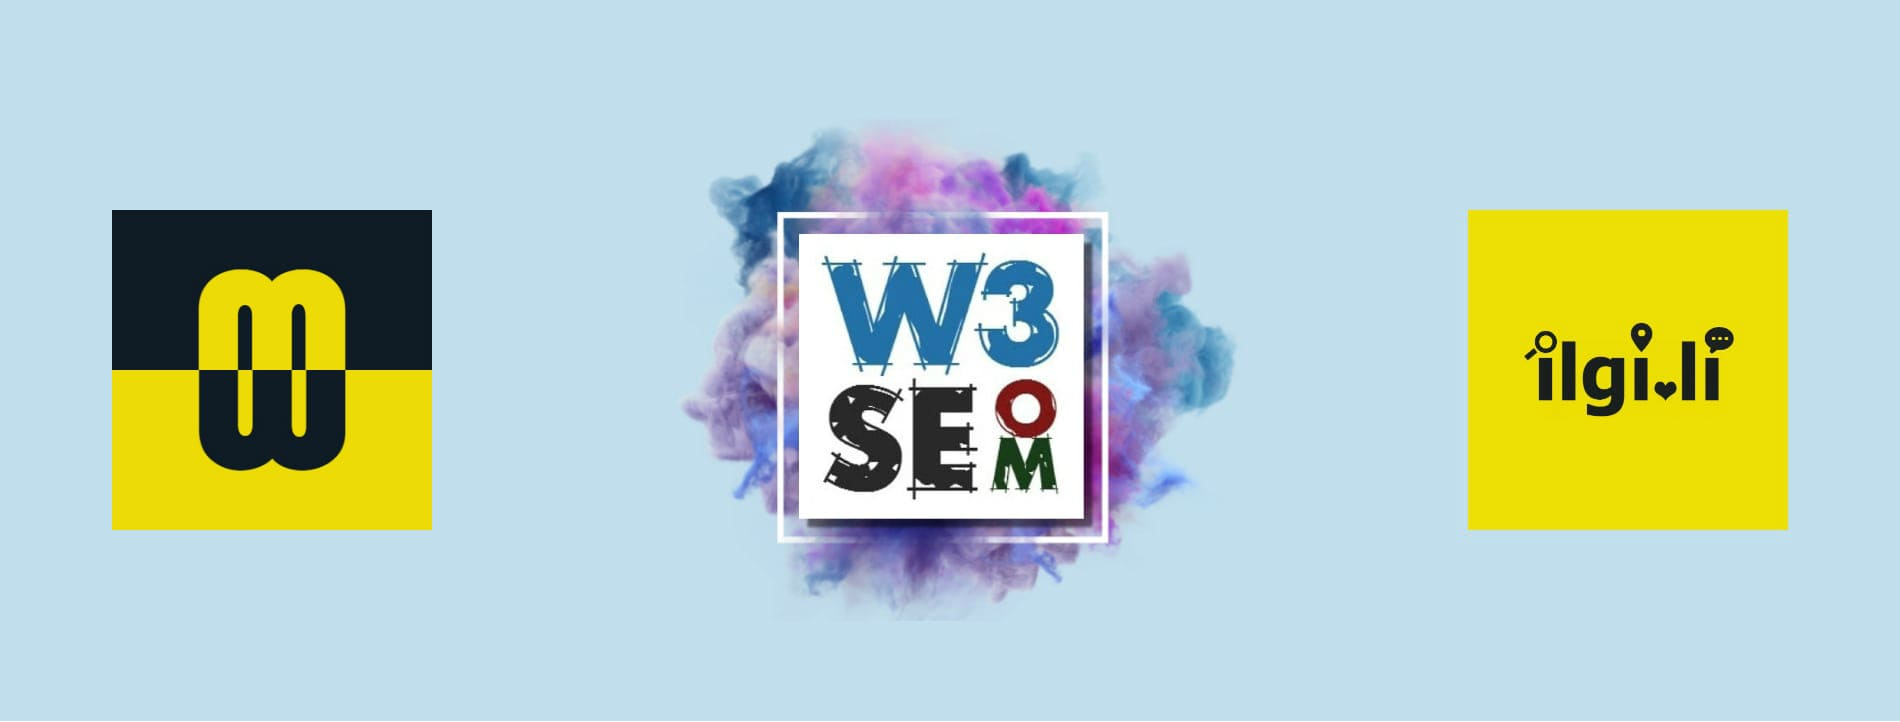 W3SEOSEM Web Development Lab